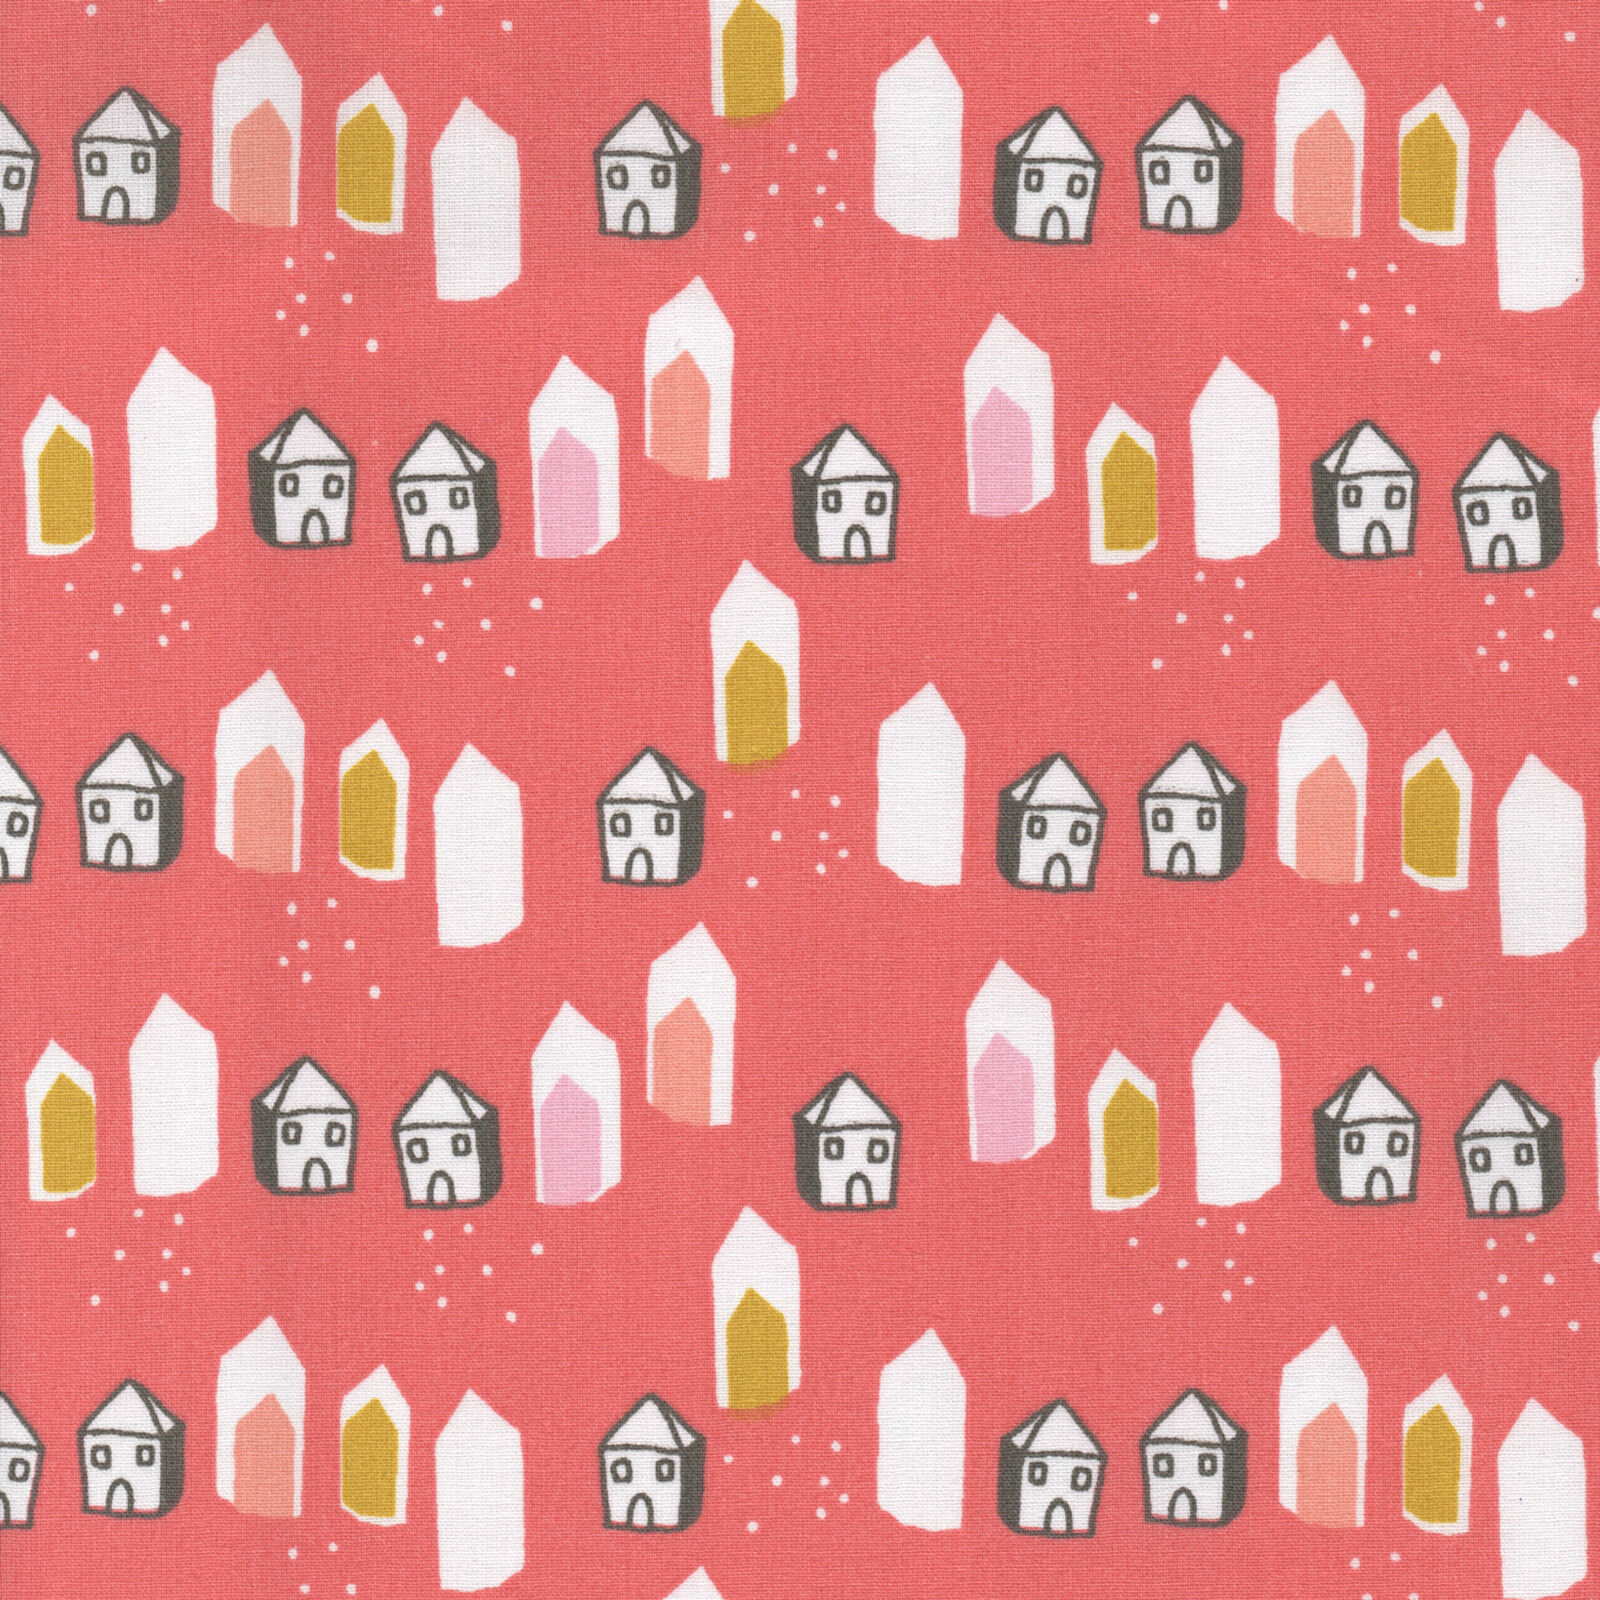 FOX GROVE FOXES HOUSE FLORAL PINK YELLOW  cotton fabric FQ  METRE OR BUNDLE